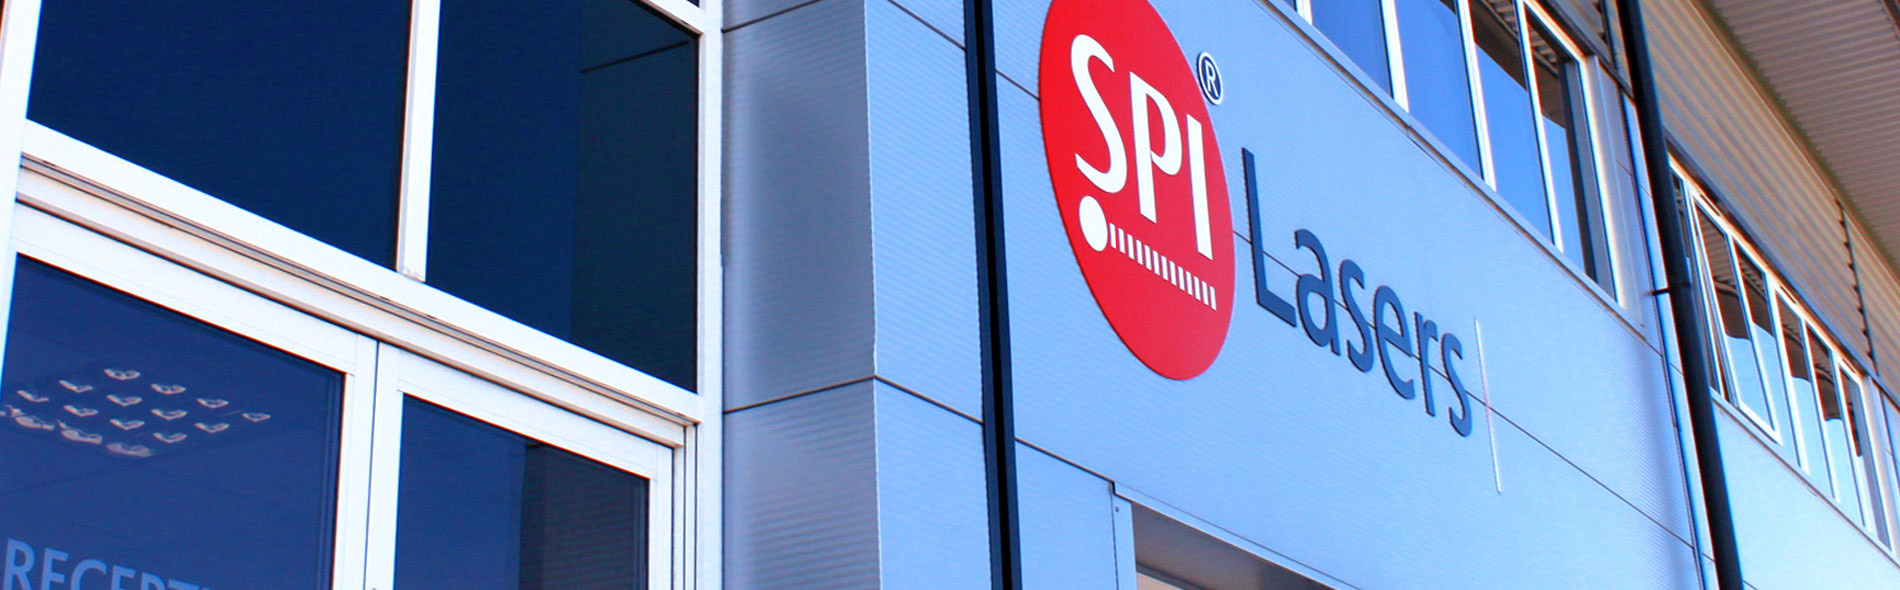 SPI Lasers underlines its customer commitment by recruiting a new 'Head of Service'.